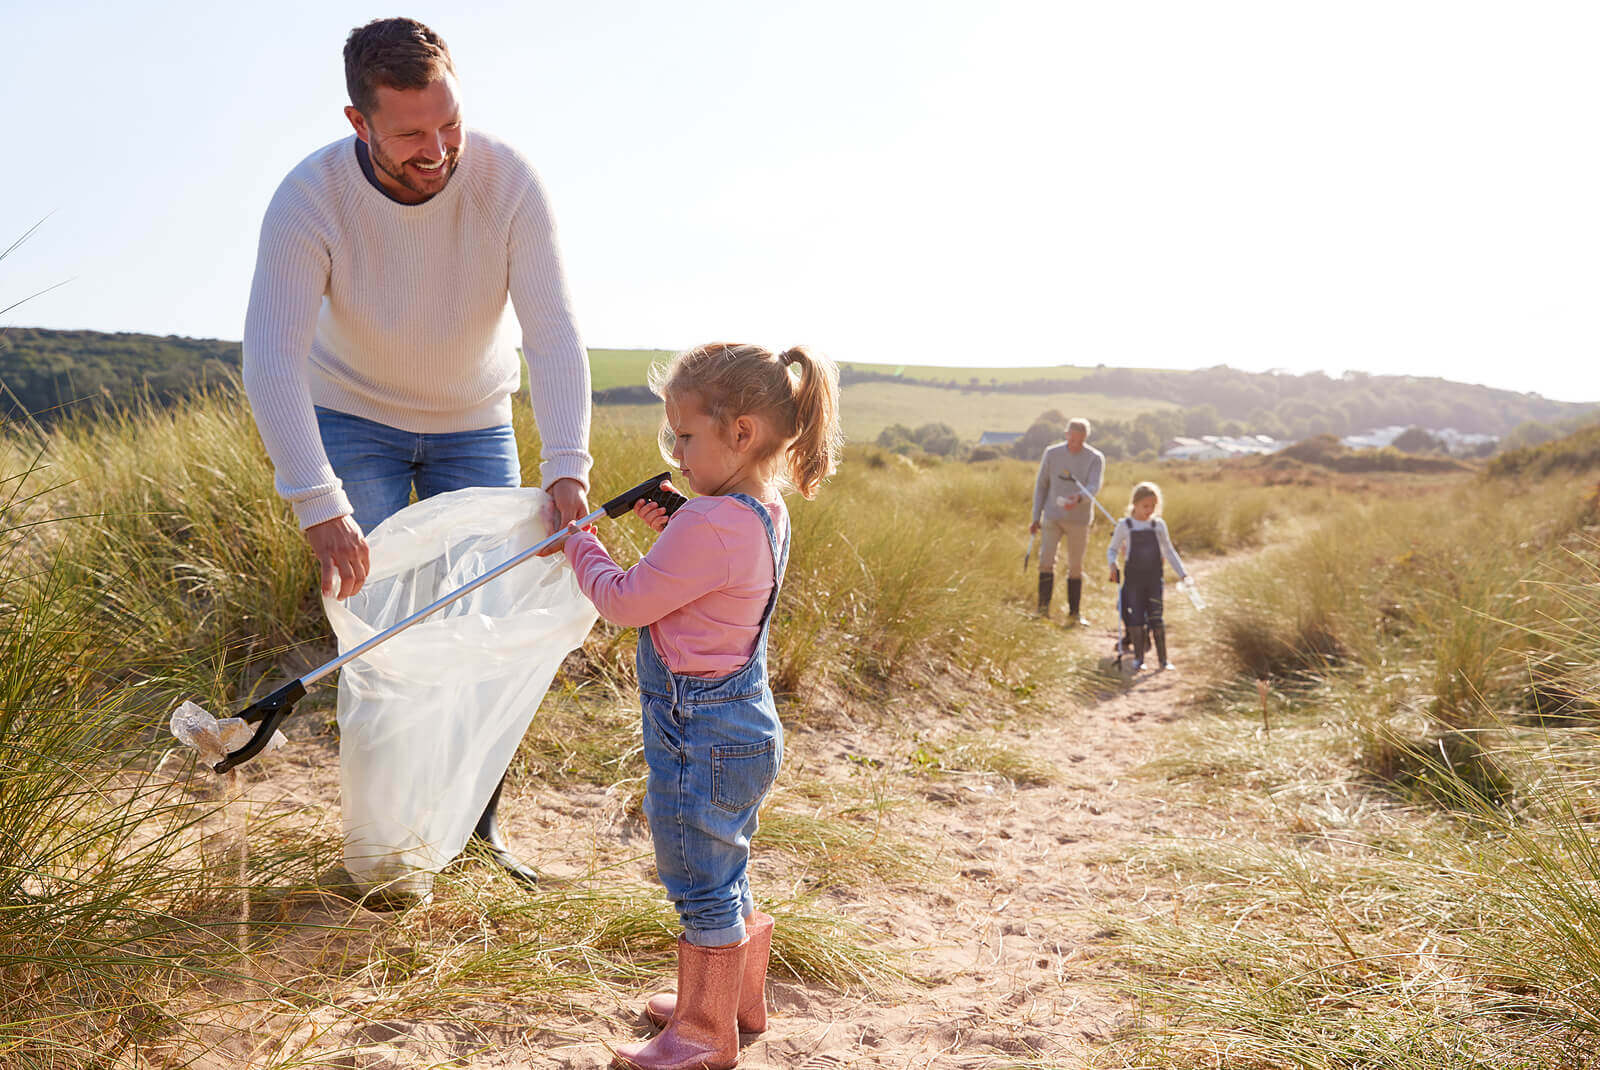 A family litter picking on a beach dune, father and daughter in foreground